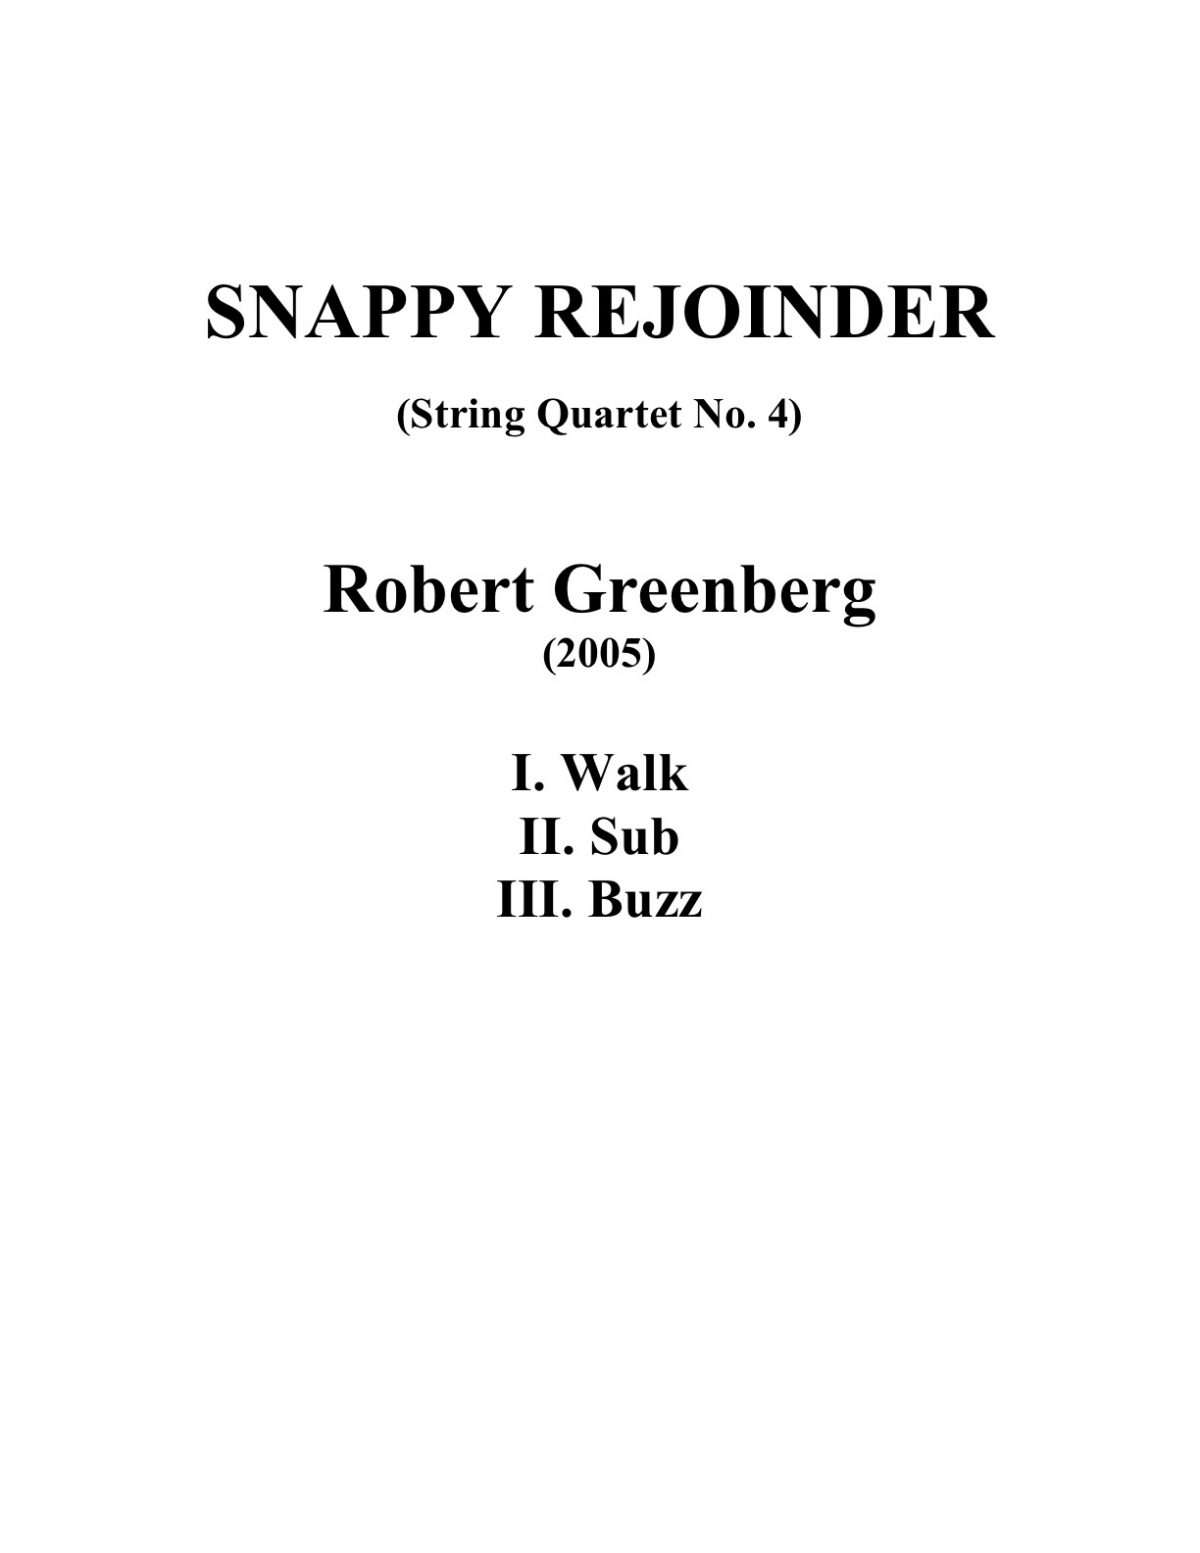 Snappy Rejoinder - String Quartet No. 4 Score Cover